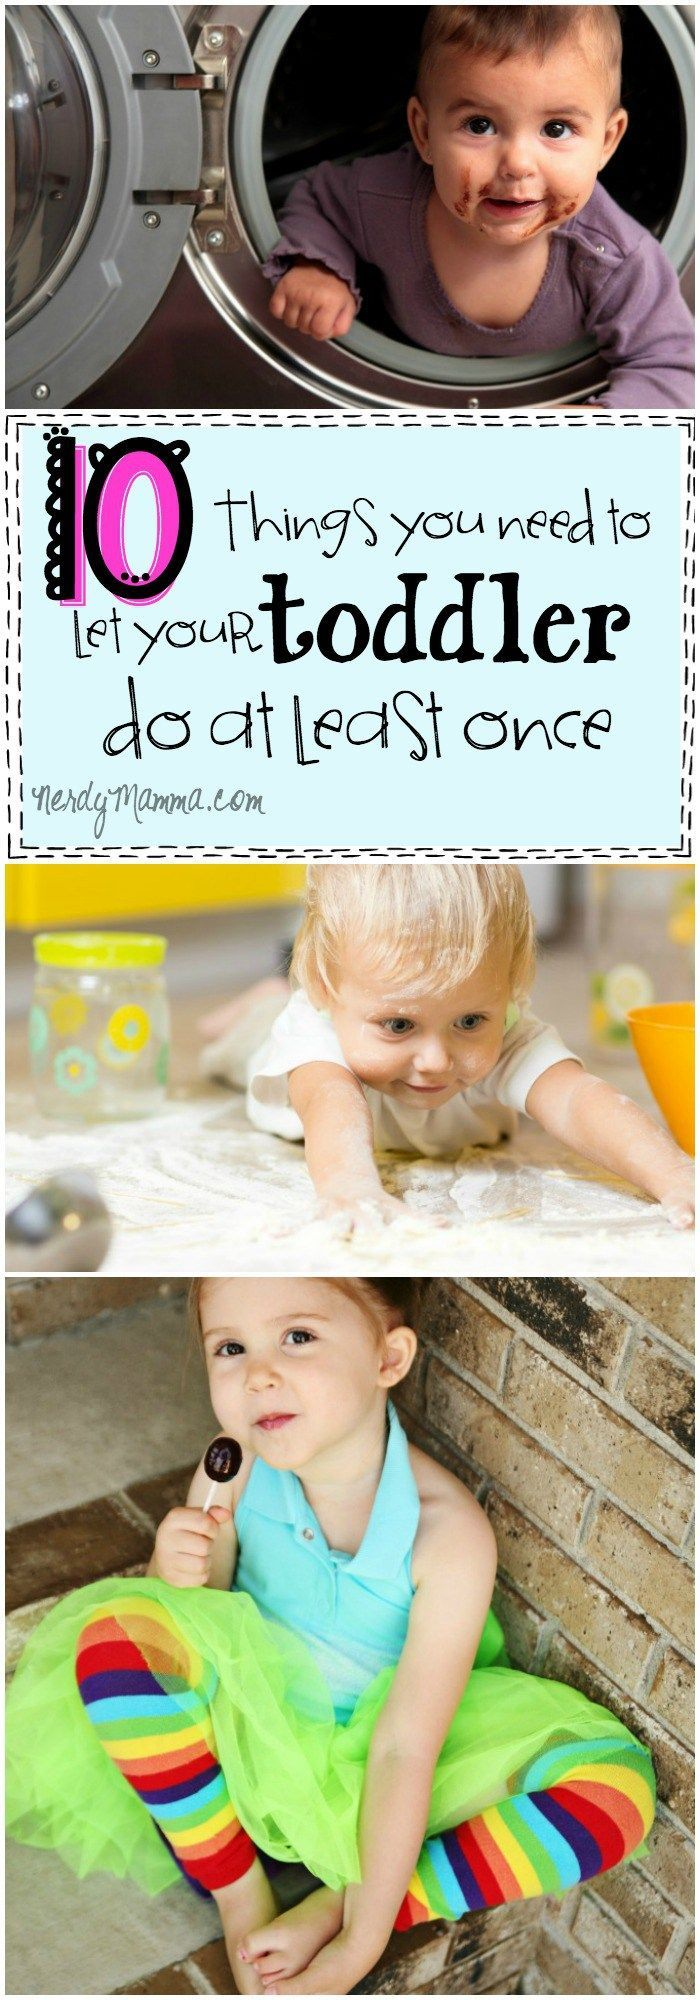 These 10 Things You Need to Let Your Toddler Do at Least Once is so SPOT ON! I think all the little kids should just be allowed to be themselves sometimes.